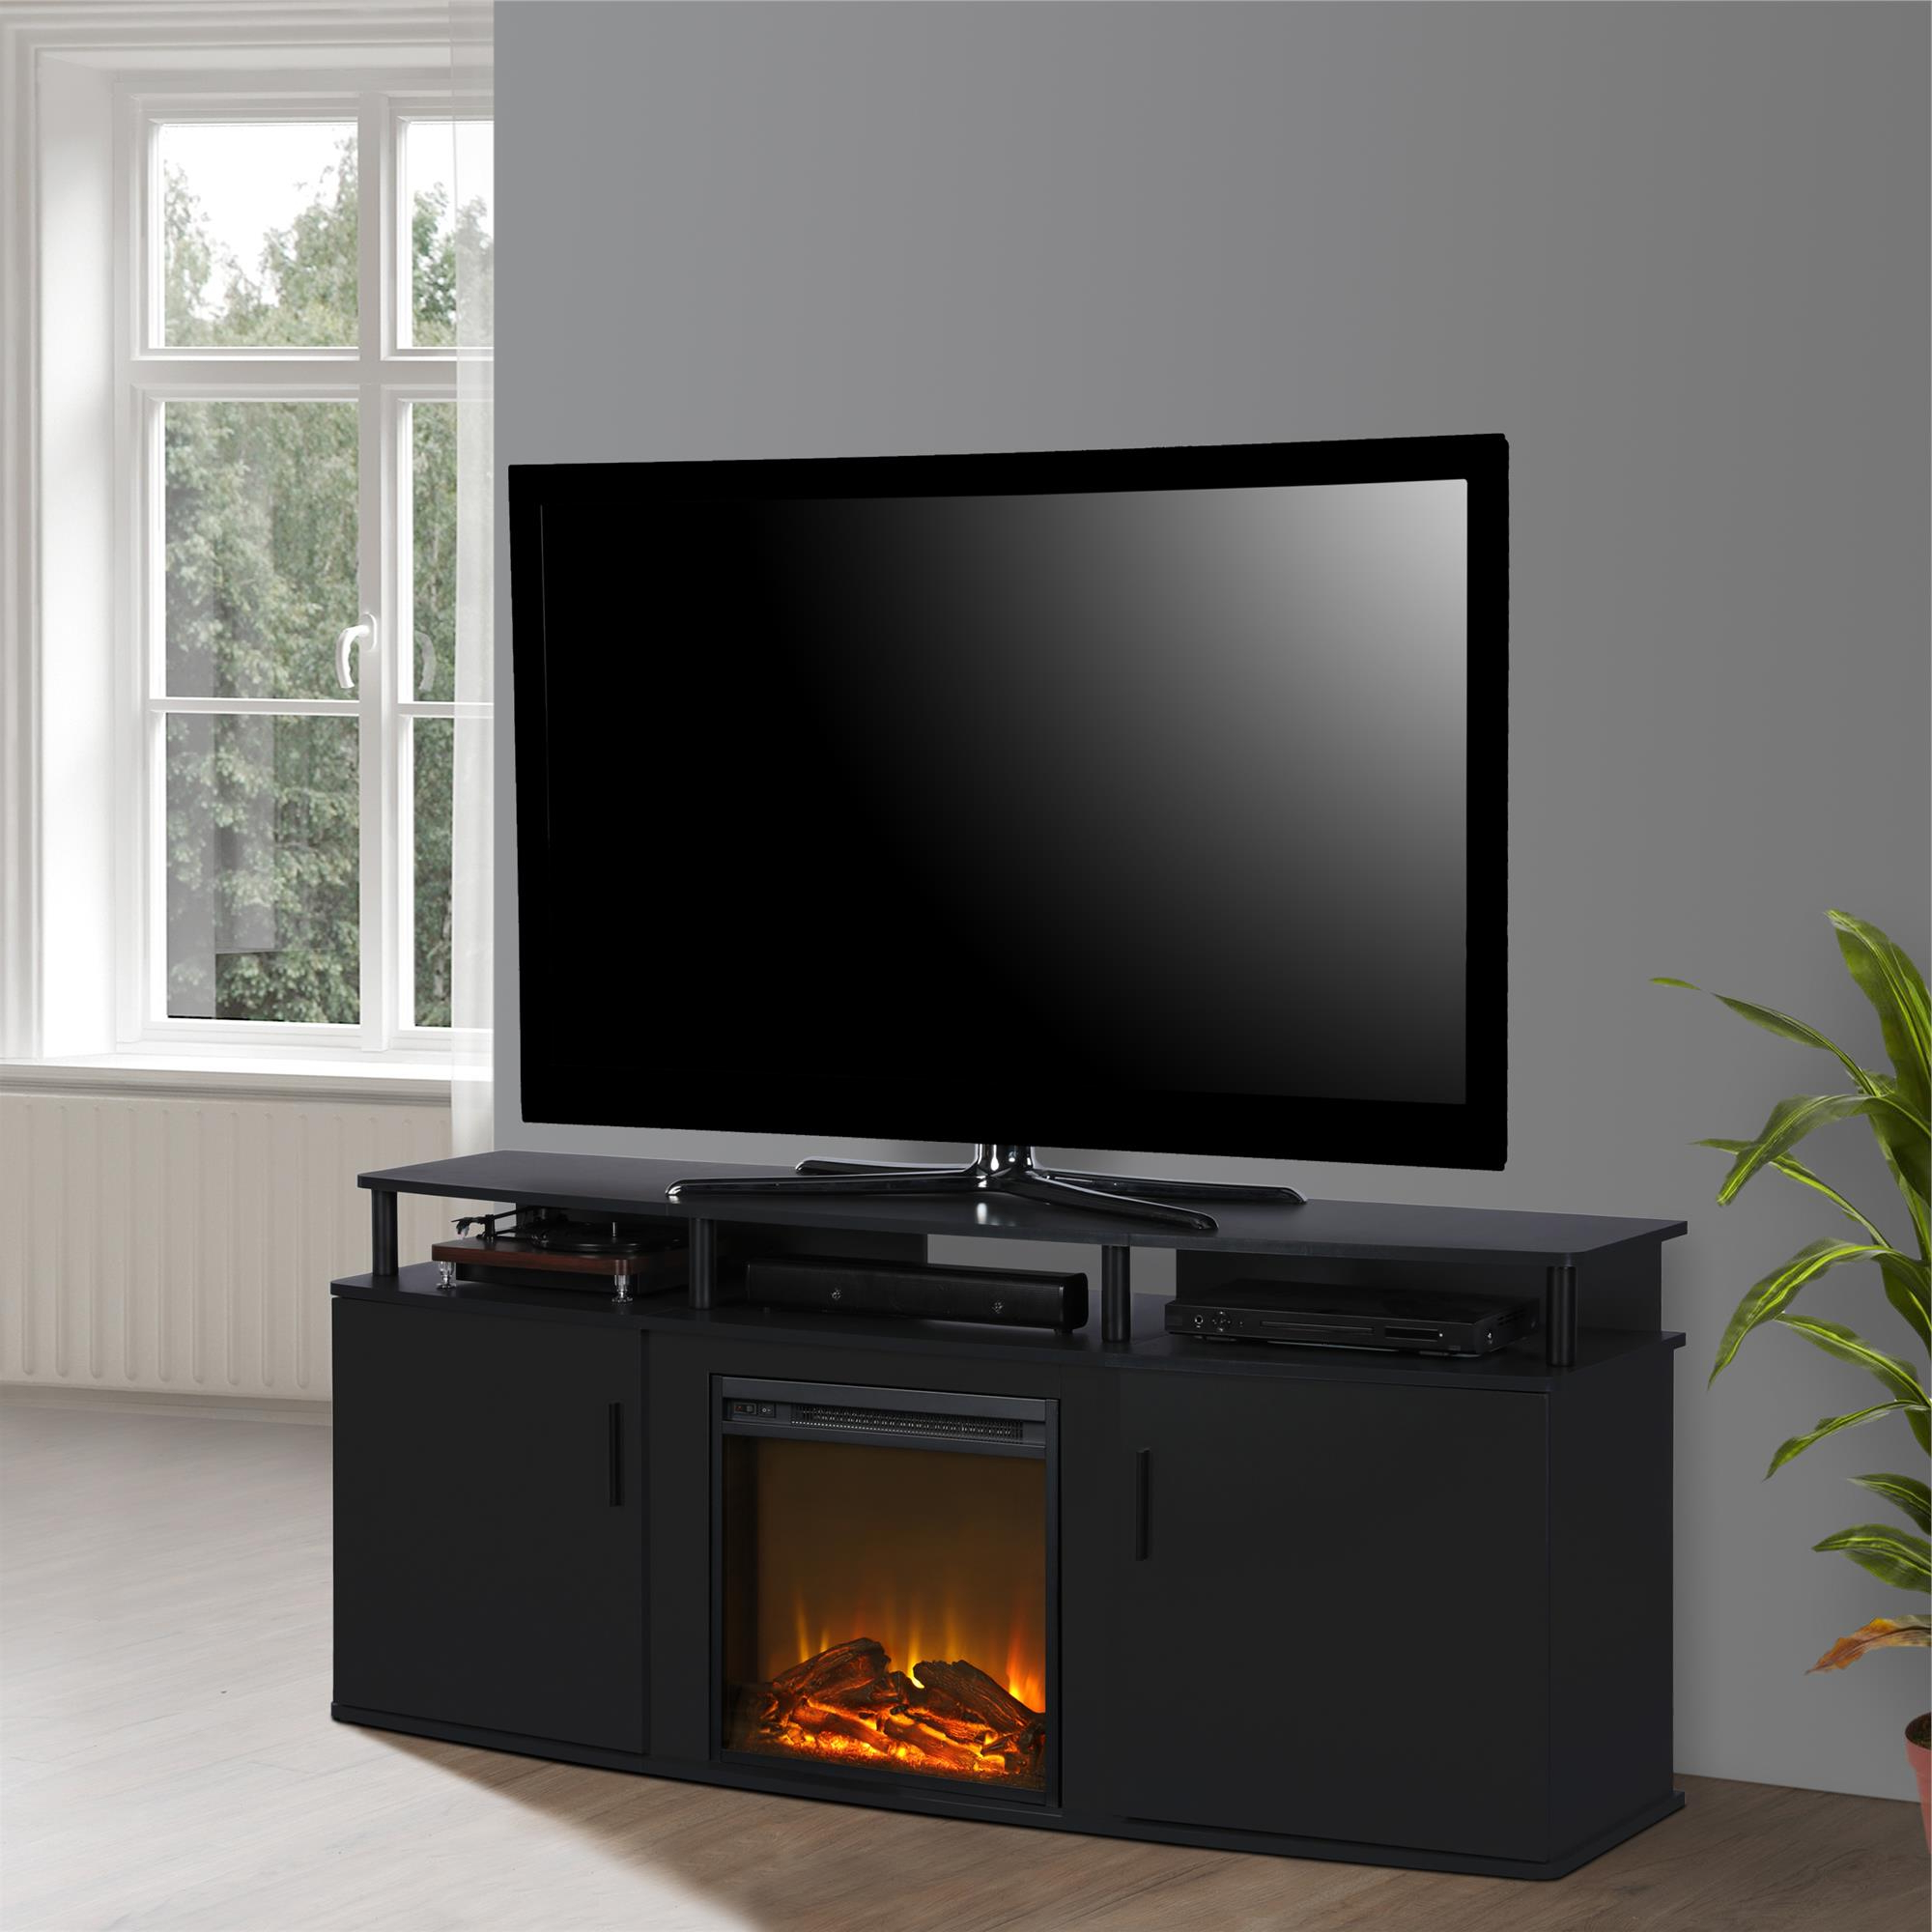 """Well Known Ameriwood Home Carson Electric Fireplace Tv Console For Intended For Chicago Tv Stands For Tvs Up To 70"""" With Fireplace Included (View 4 of 25)"""